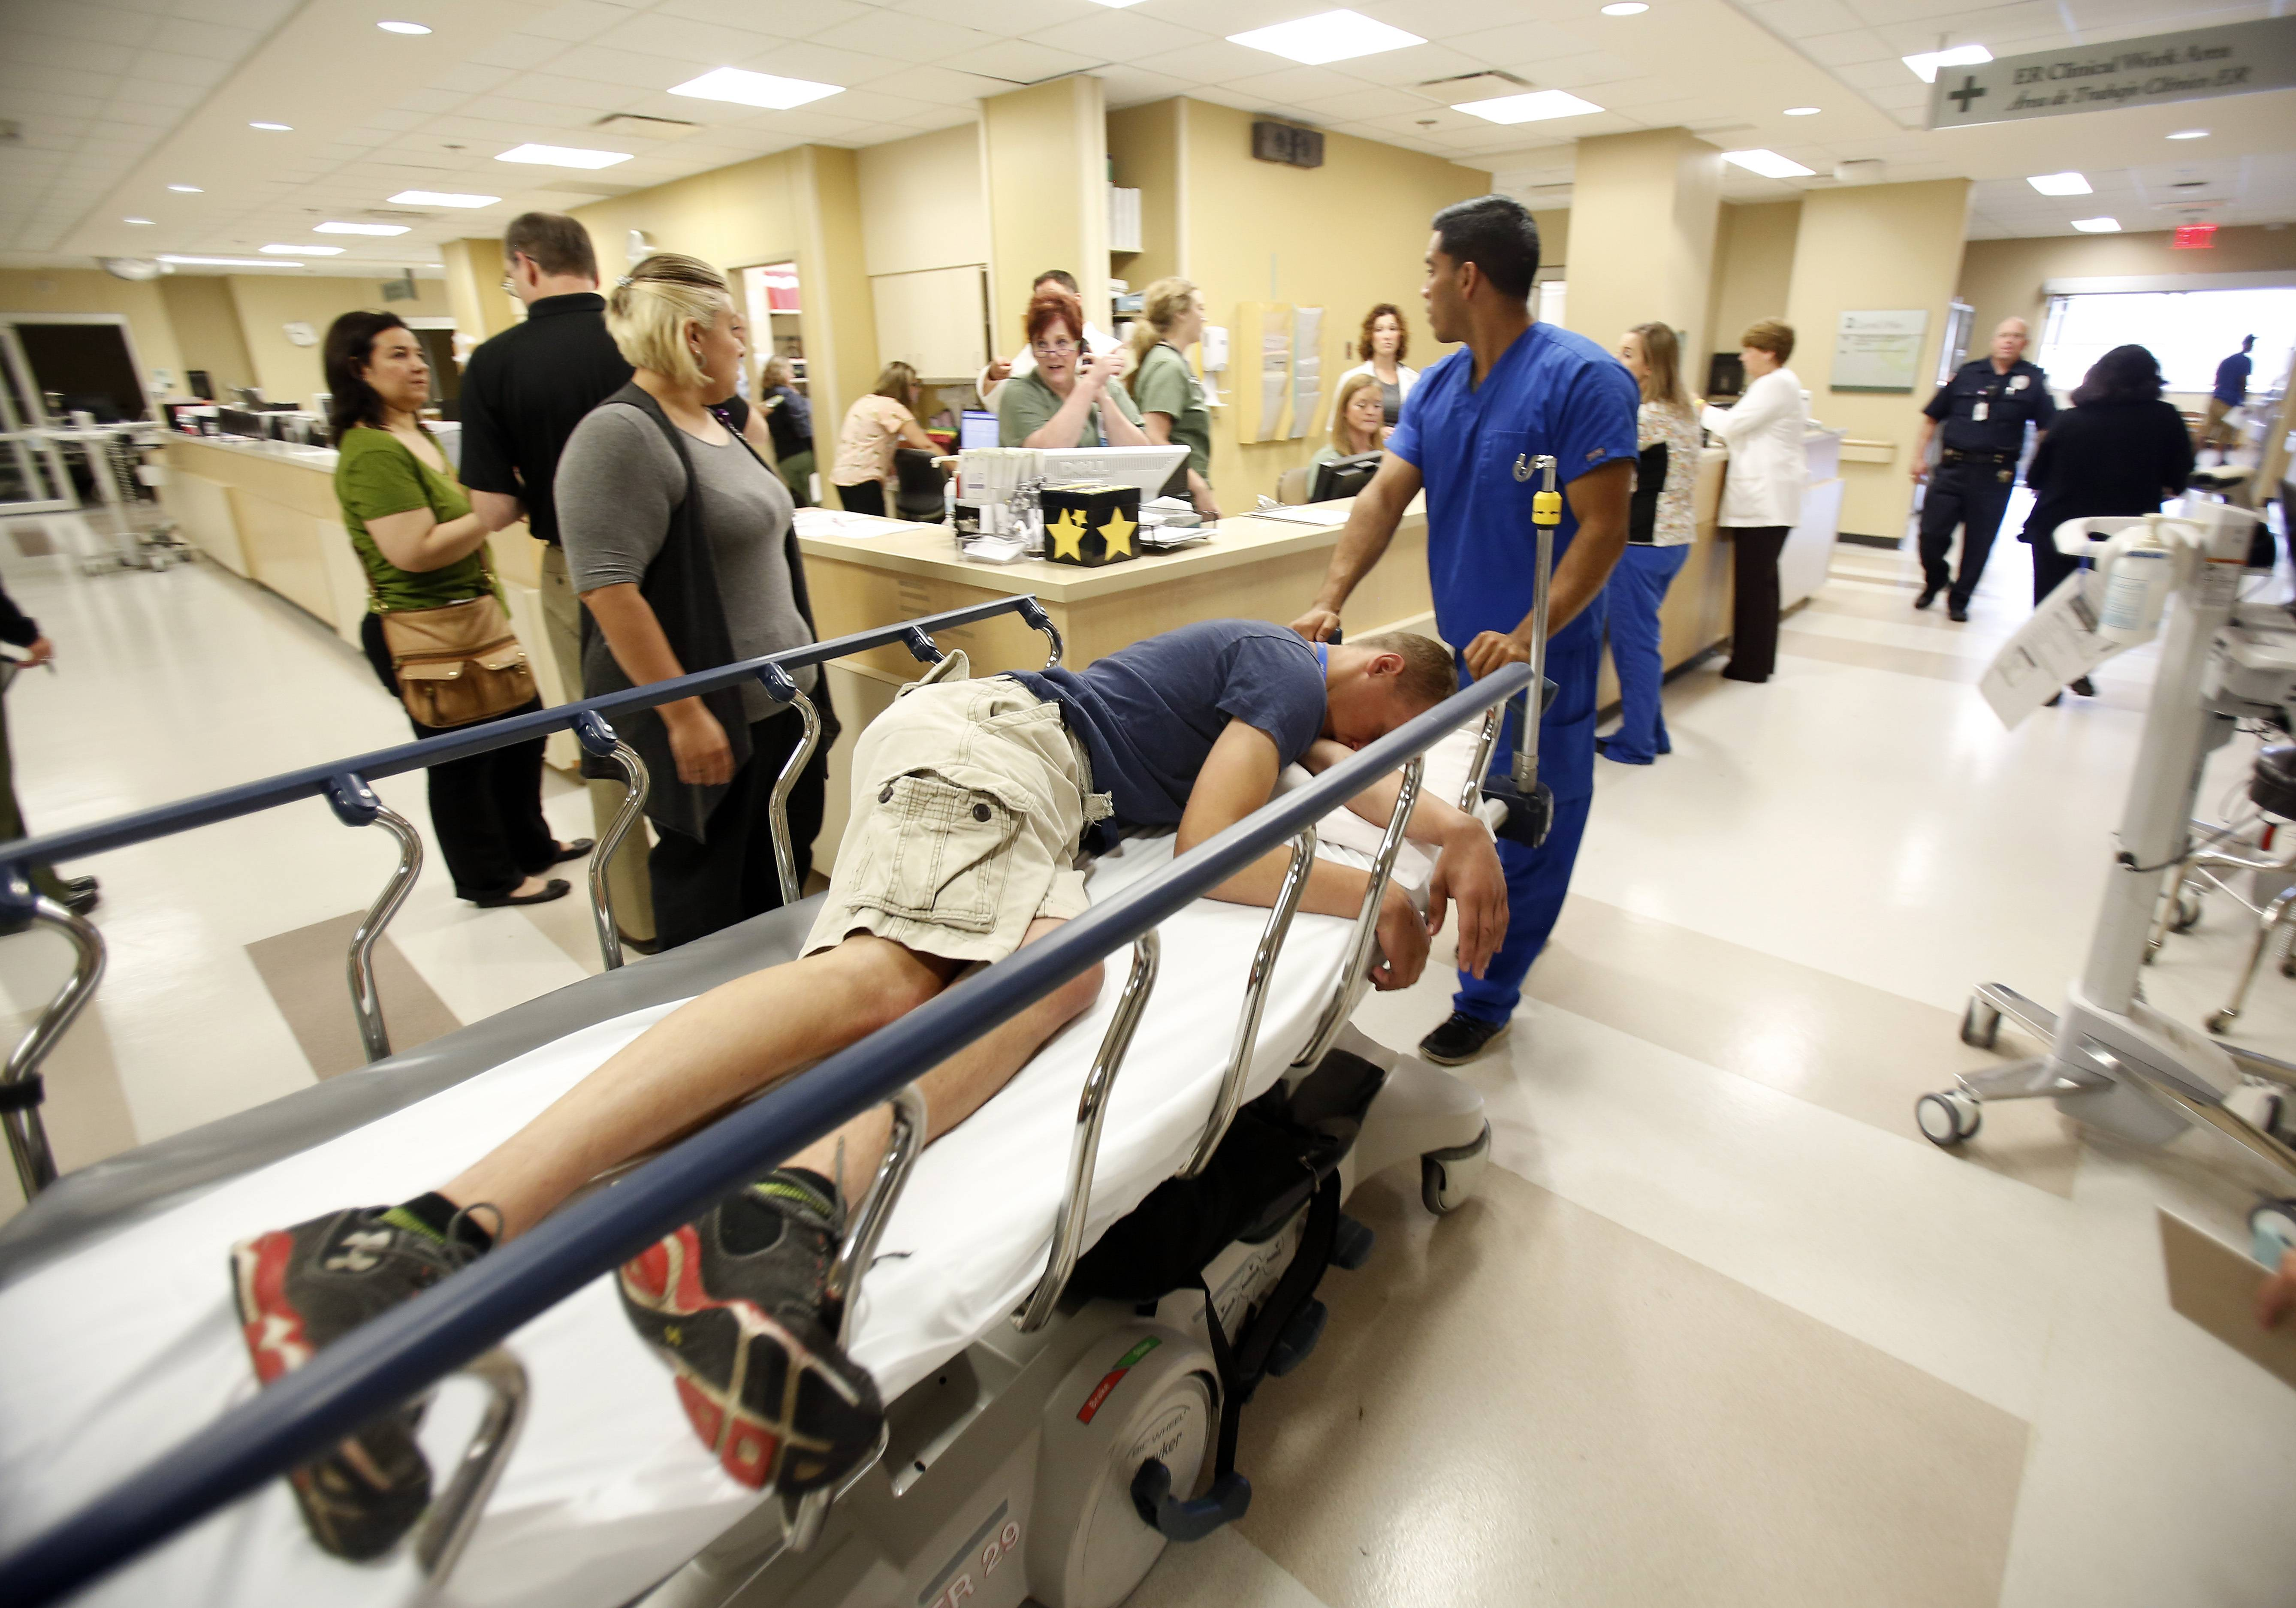 Role-player Cameron Skaja, 17, of Elgin is rolled into the emergency room Tuesday at Advocate Sherman Hospital in Elgin as part of a school shooting training drill conducted by the Elgin police and fire departments.